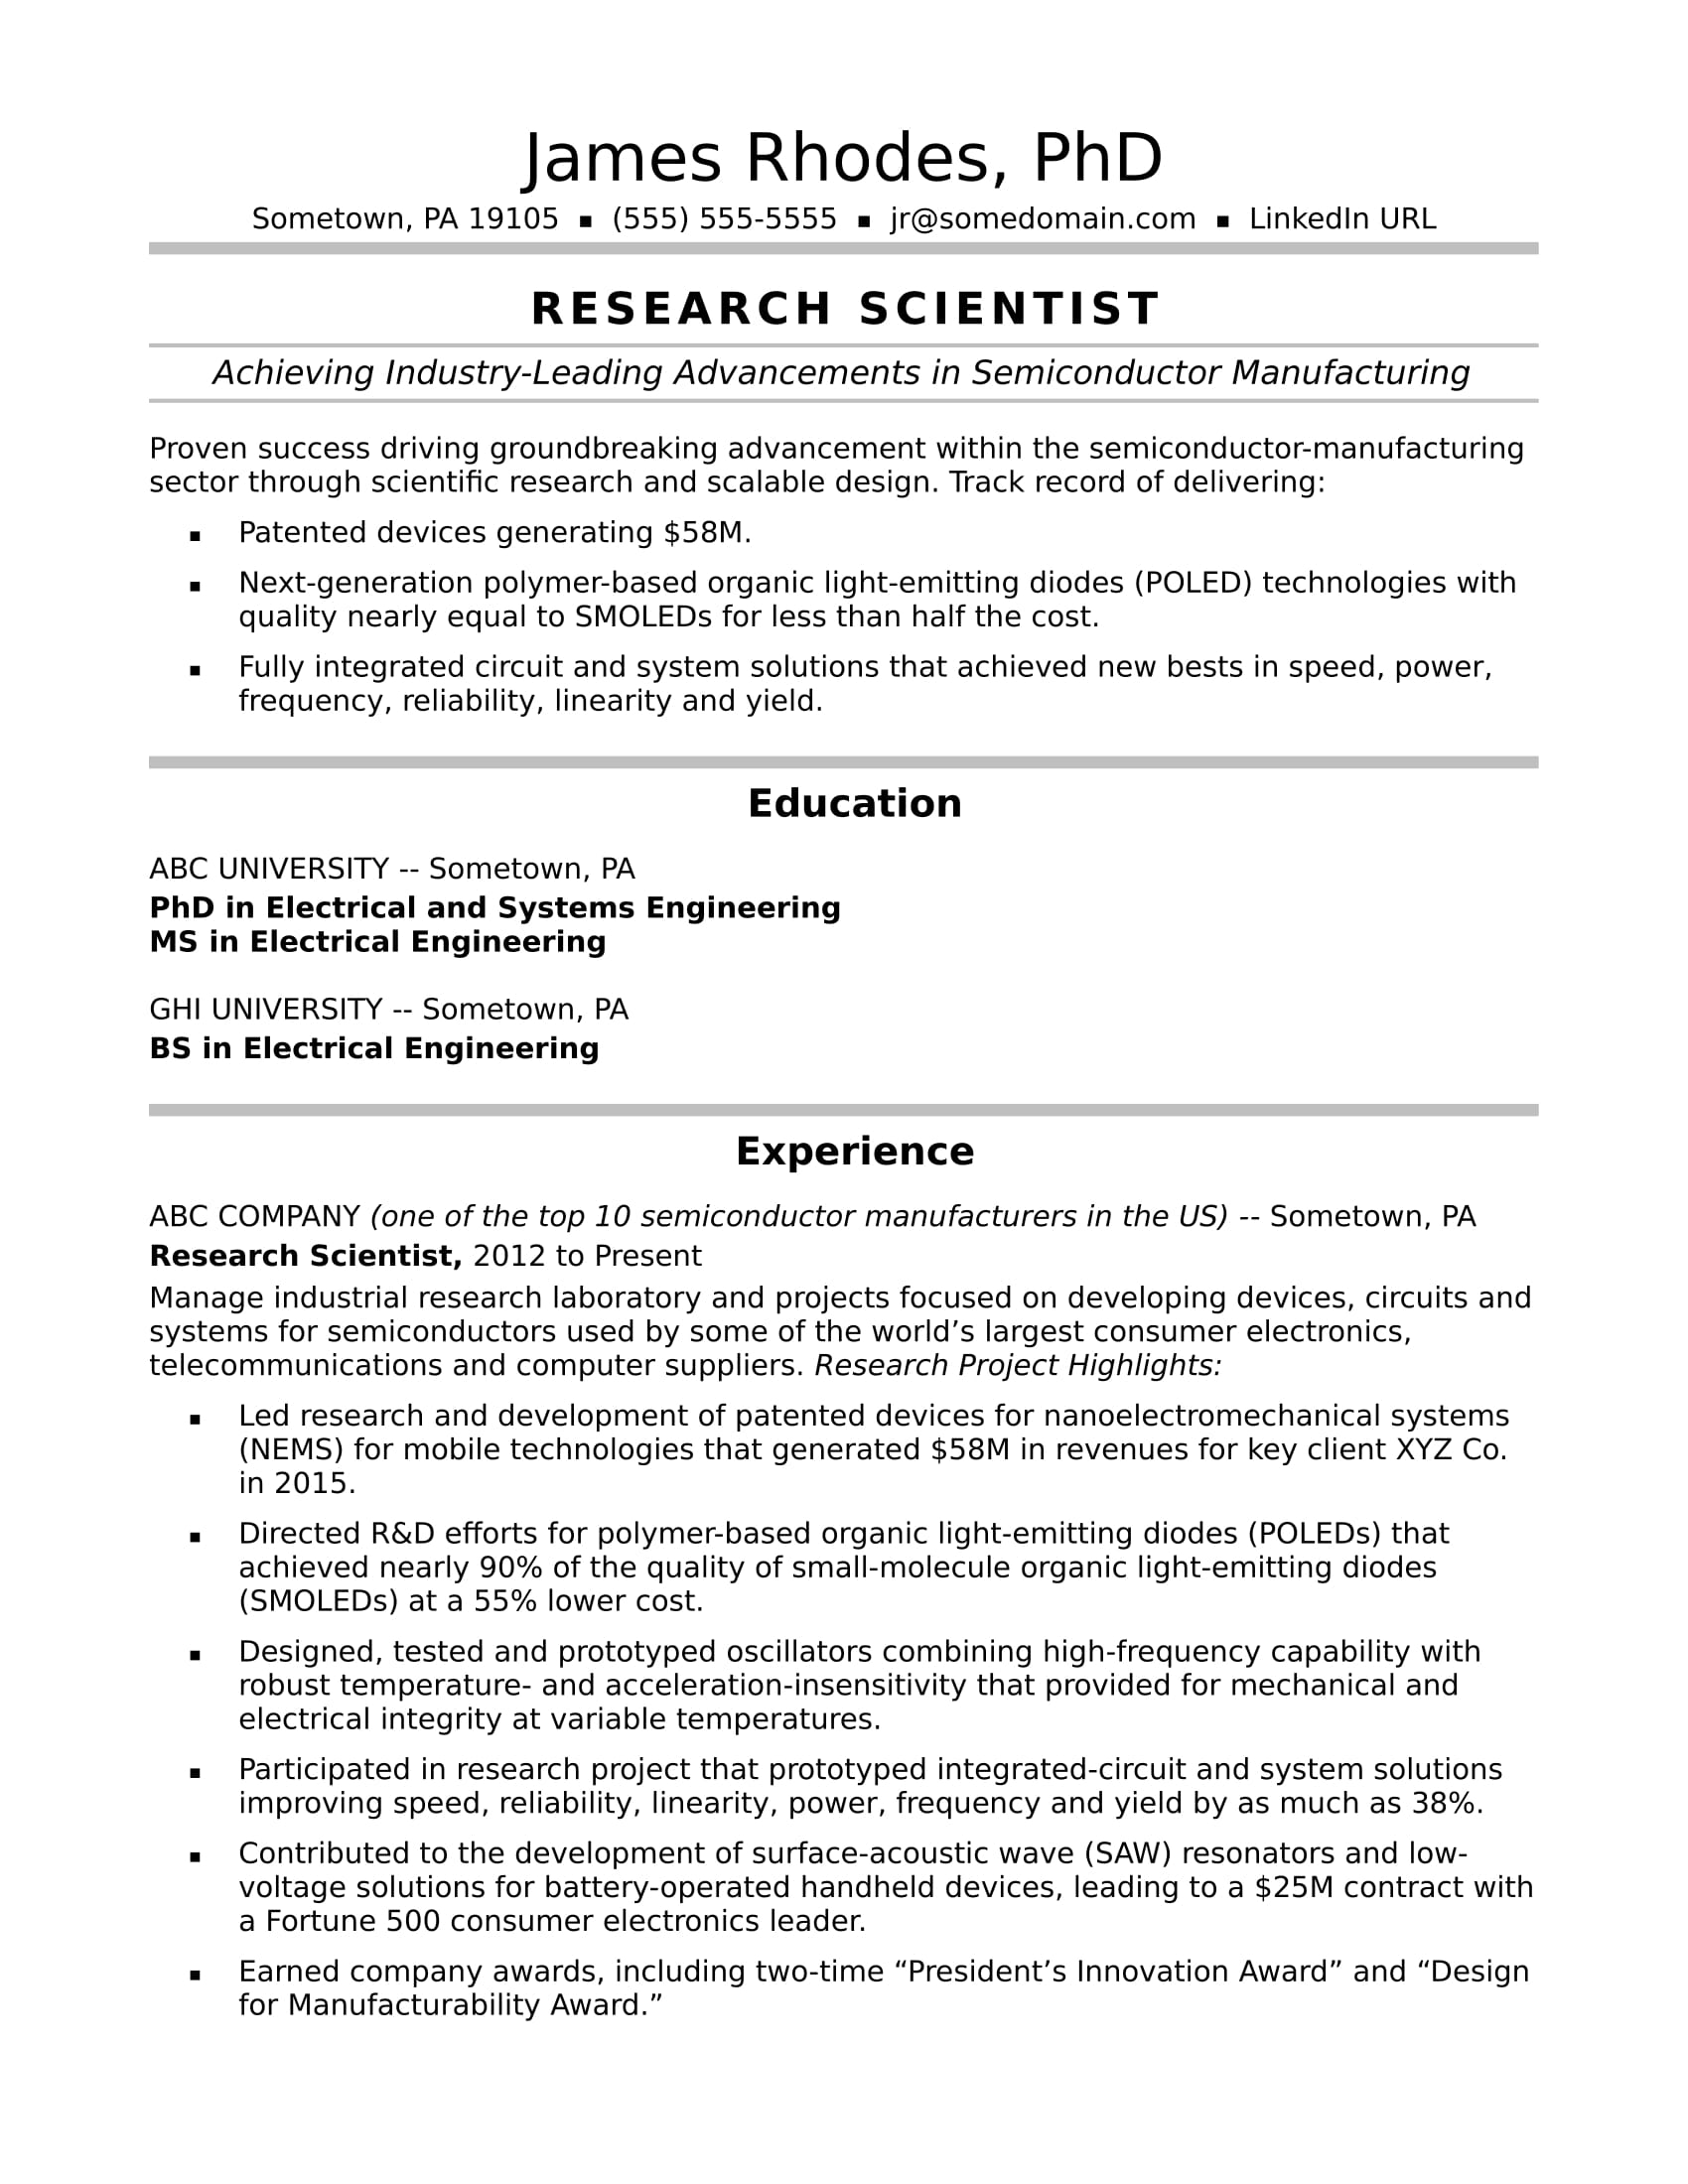 Sample Resume For A Research Scientist  Resume Writting